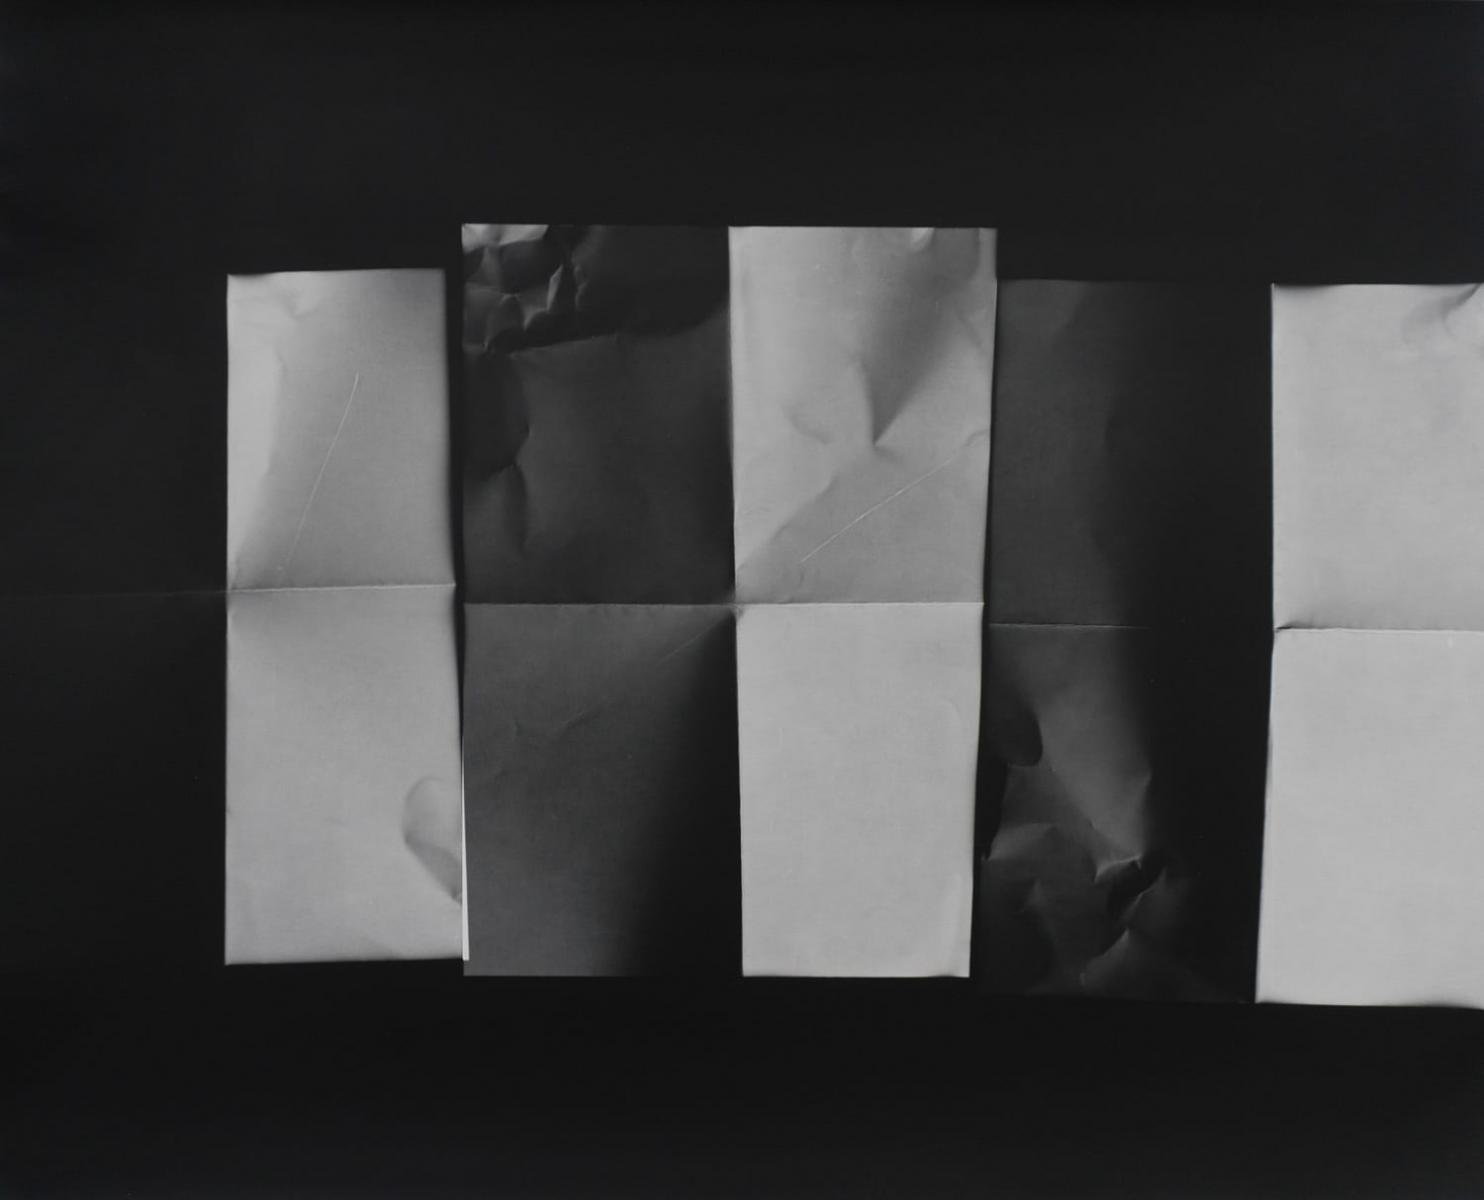 """""""Three letters folded again,"""" 2018. Unique silver gelatin print. From the series """"Fixing a Shadow"""""""